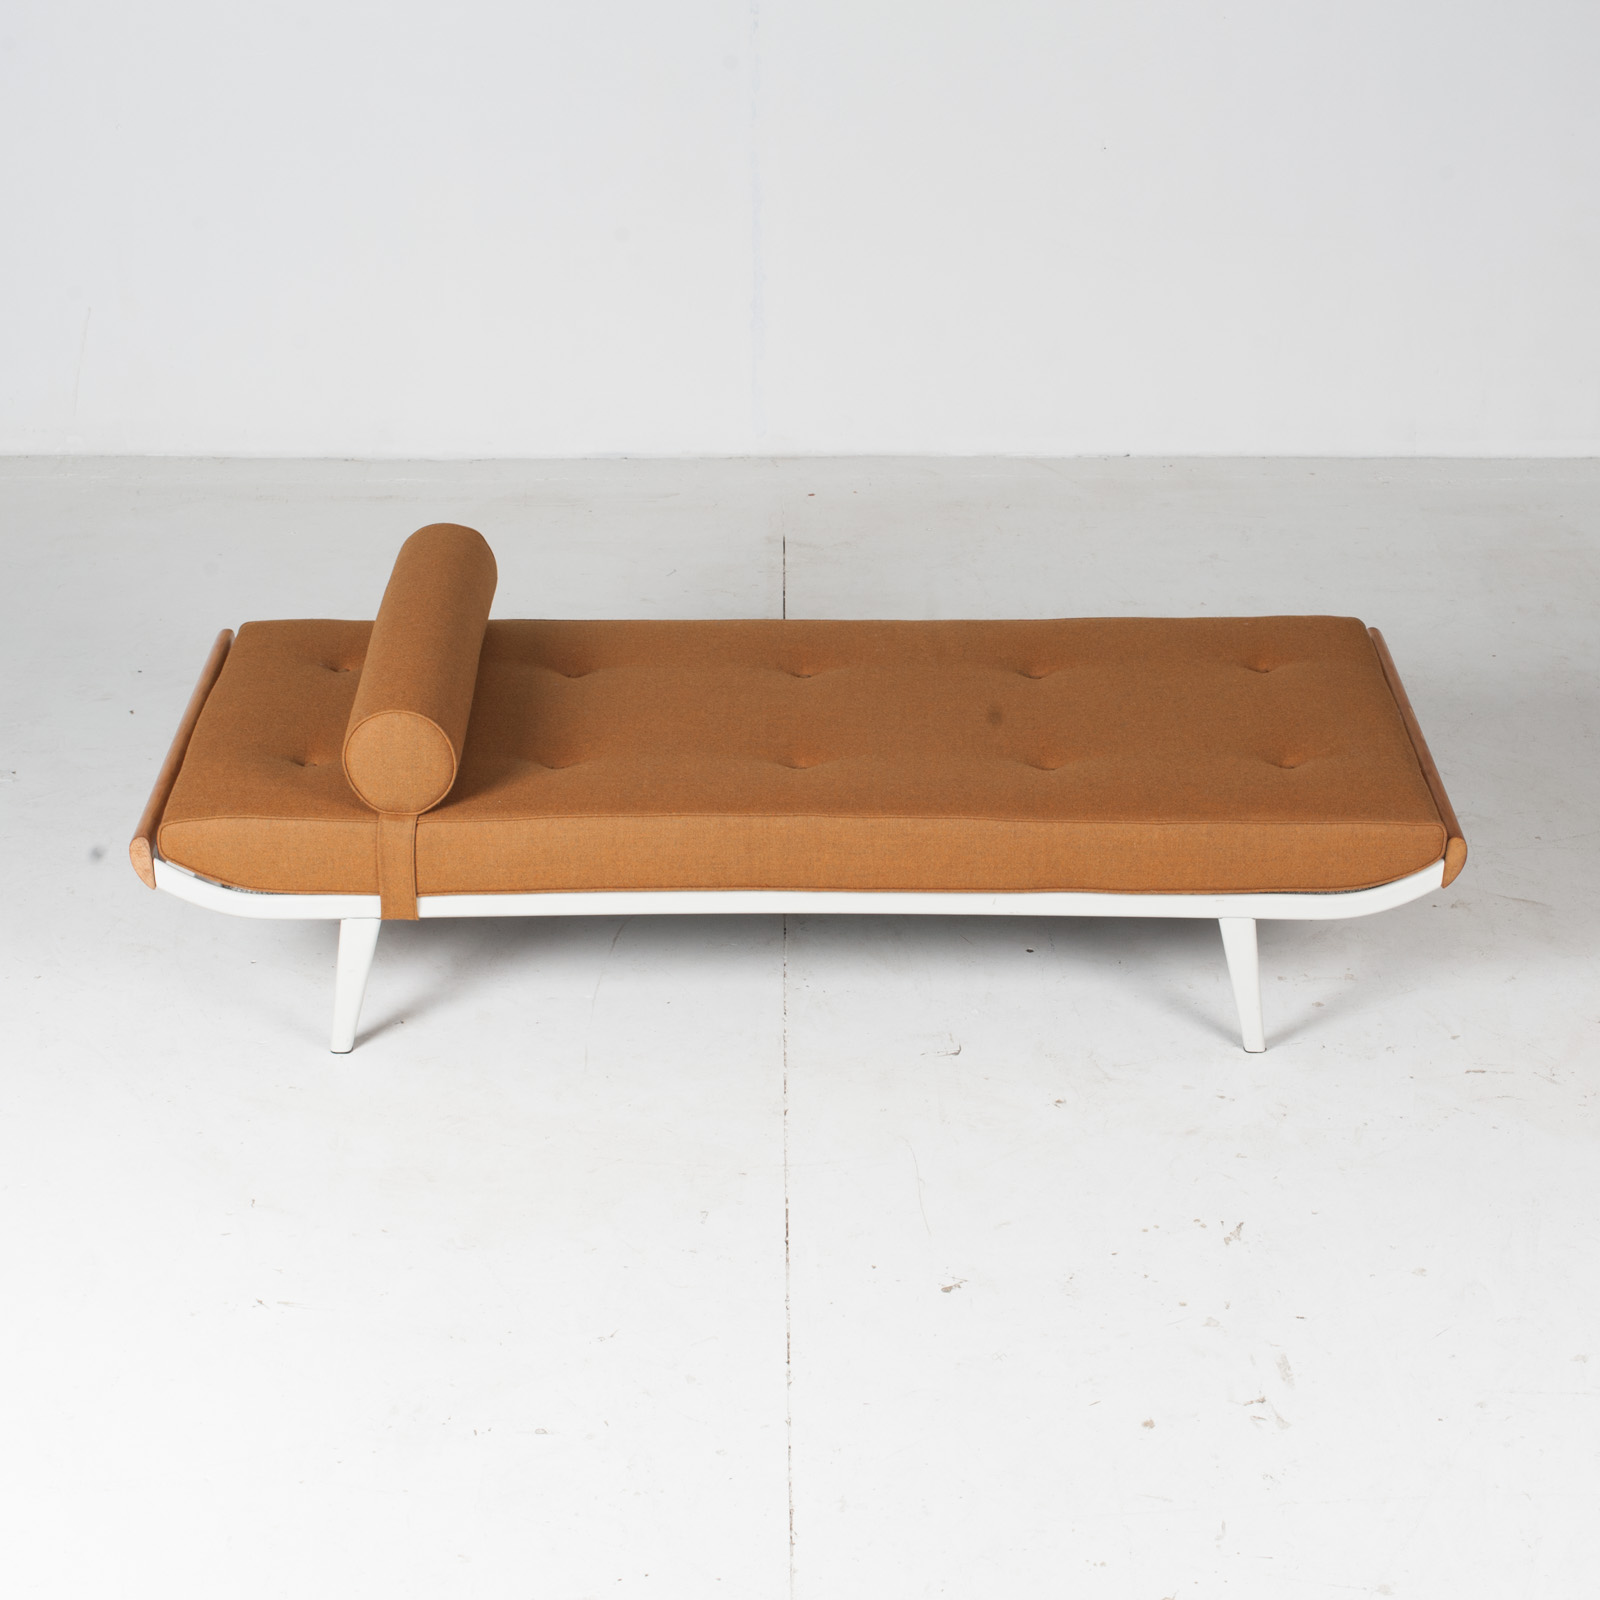 Cleopatra Daybed By Andre Cordemeyer For Auping In White Frame, 1950s, The Netherlands21